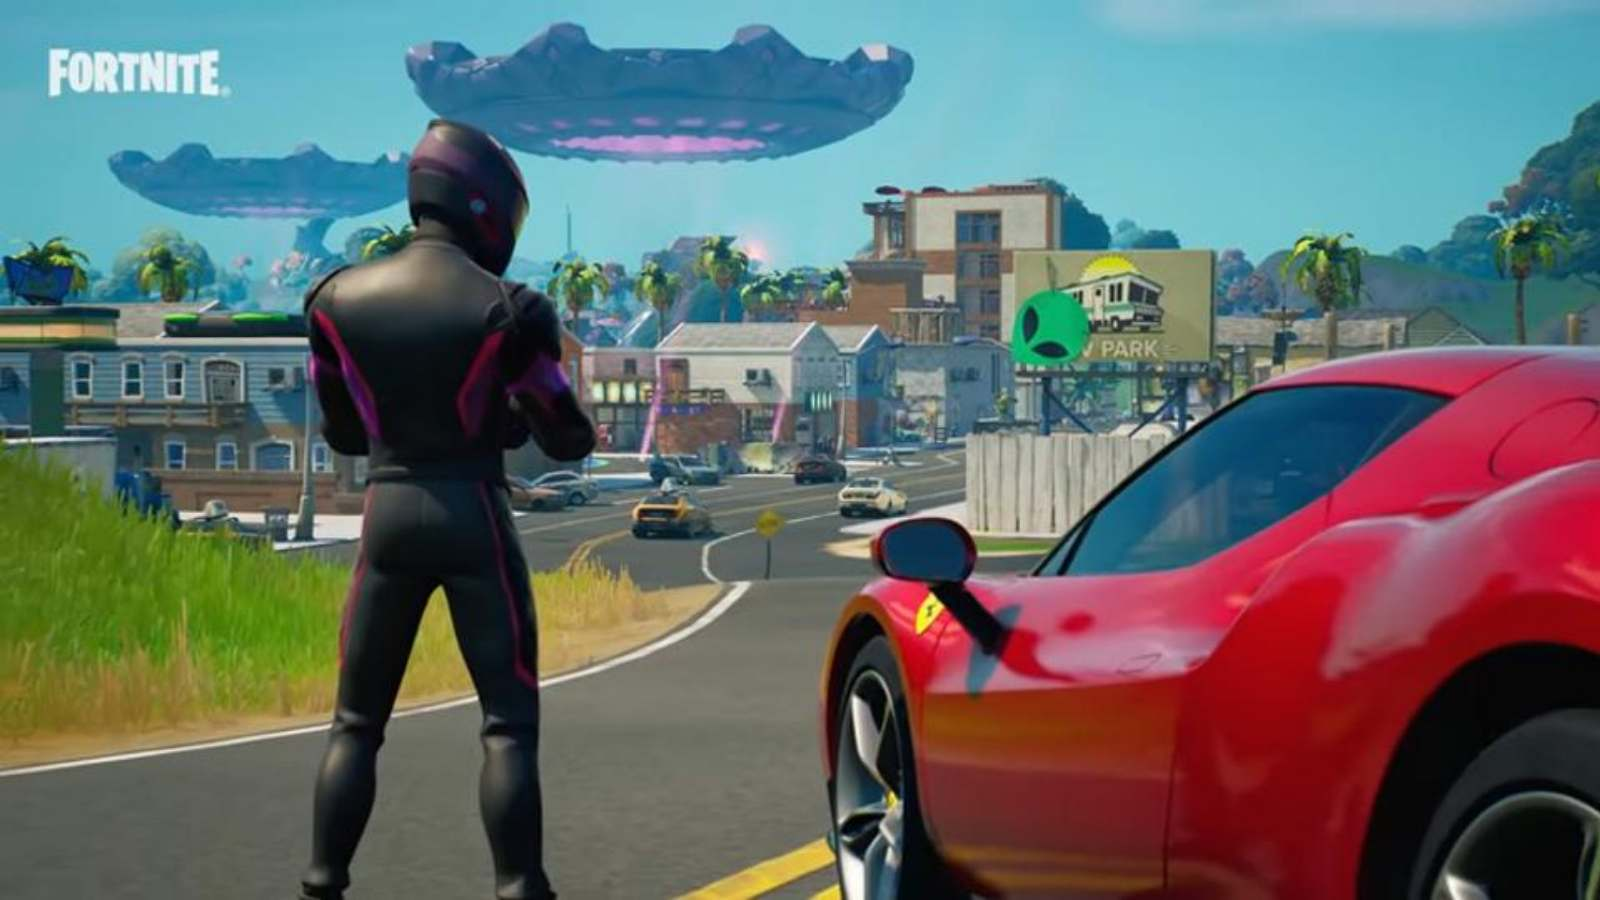 How to Complete the Fortnite Ferrari Time Trial Challenge in Season 7